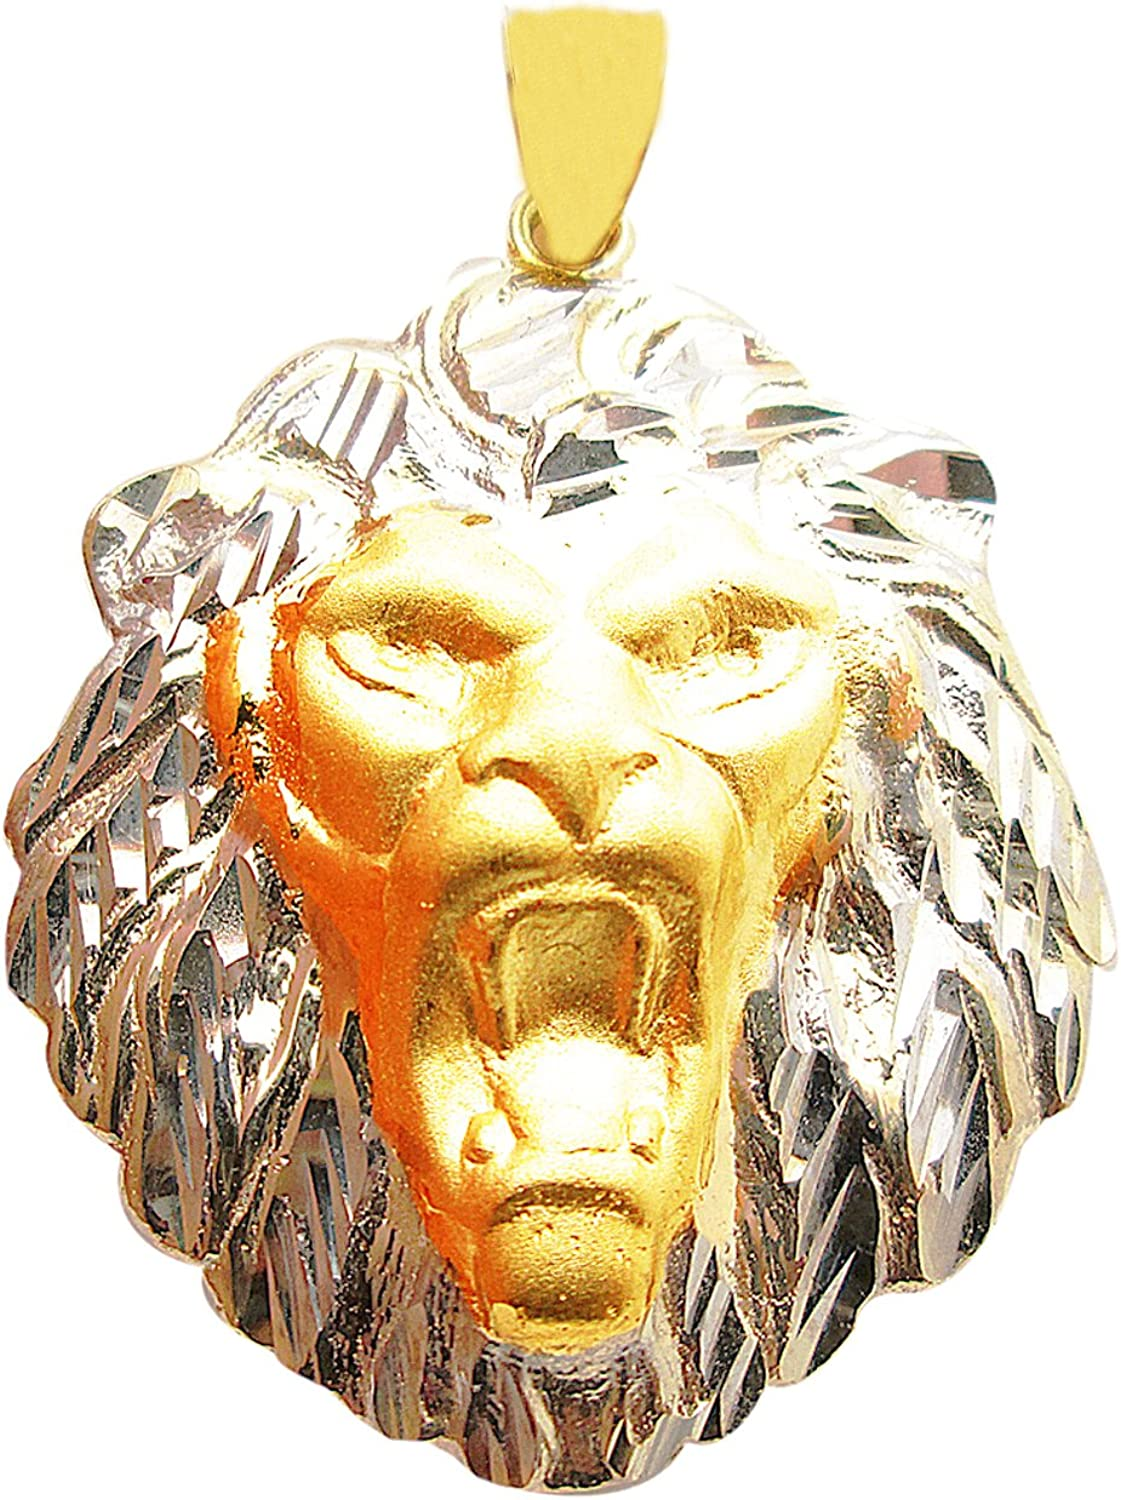 US-Shopsmart 10K Translated Two Tone Today's only Gold Pendant Lion Head Face Charm